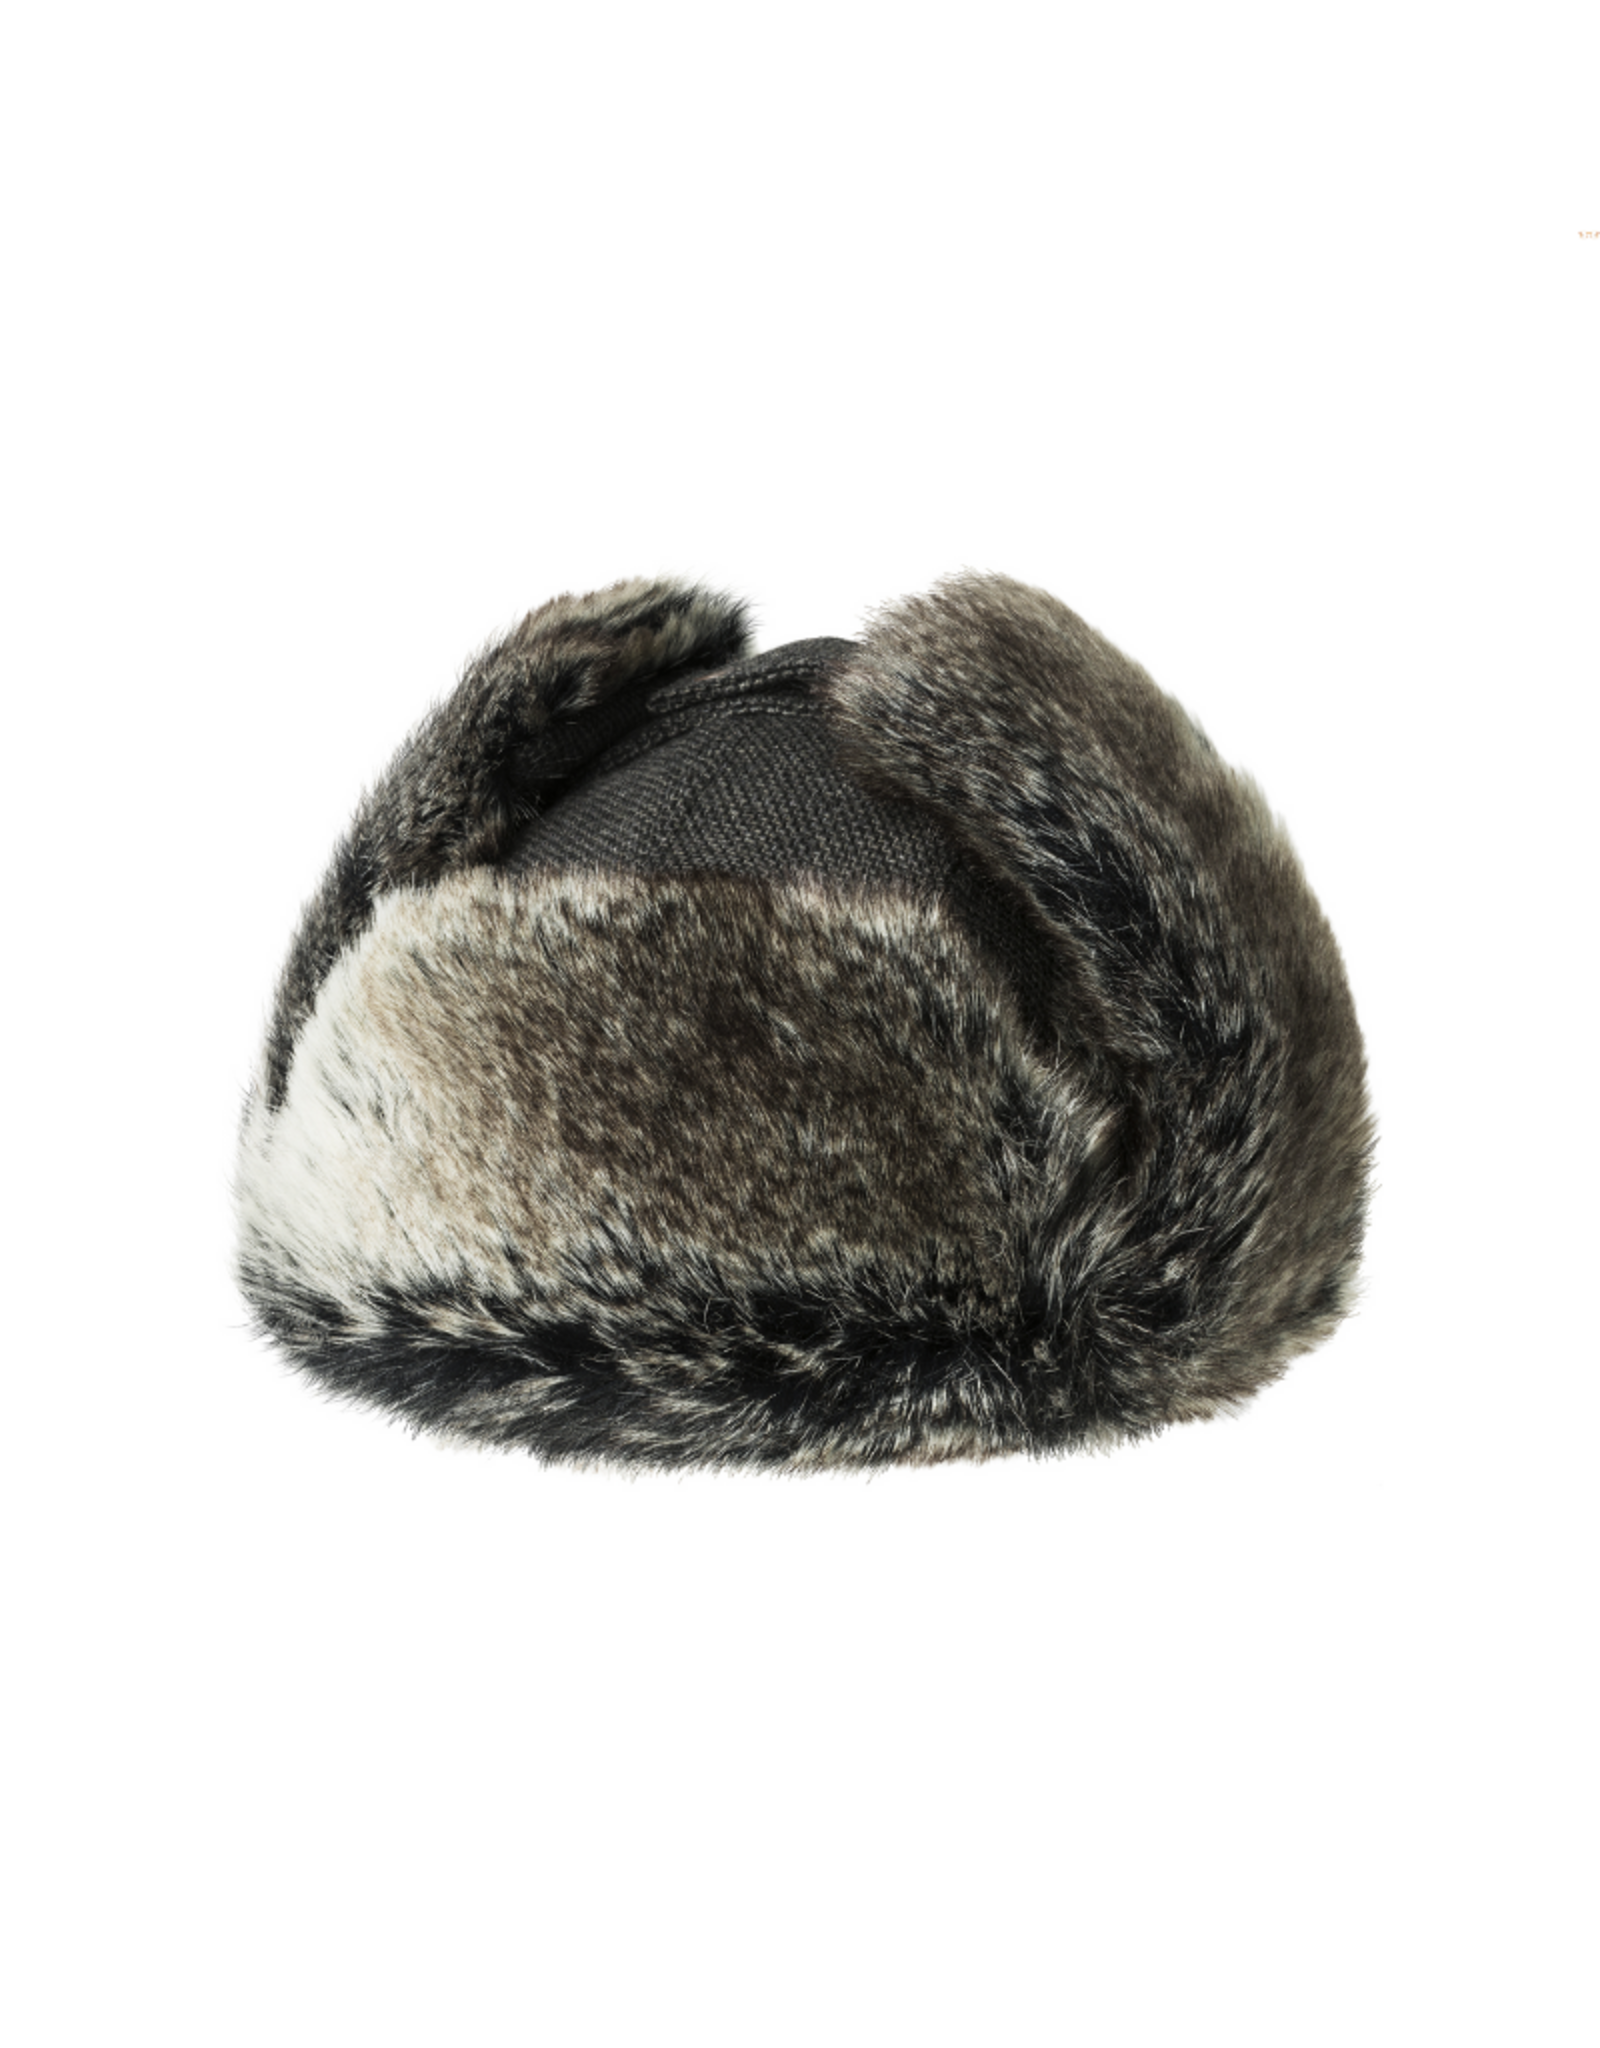 Bailey Hat Co. HAT-TRAPPER-BRODIE